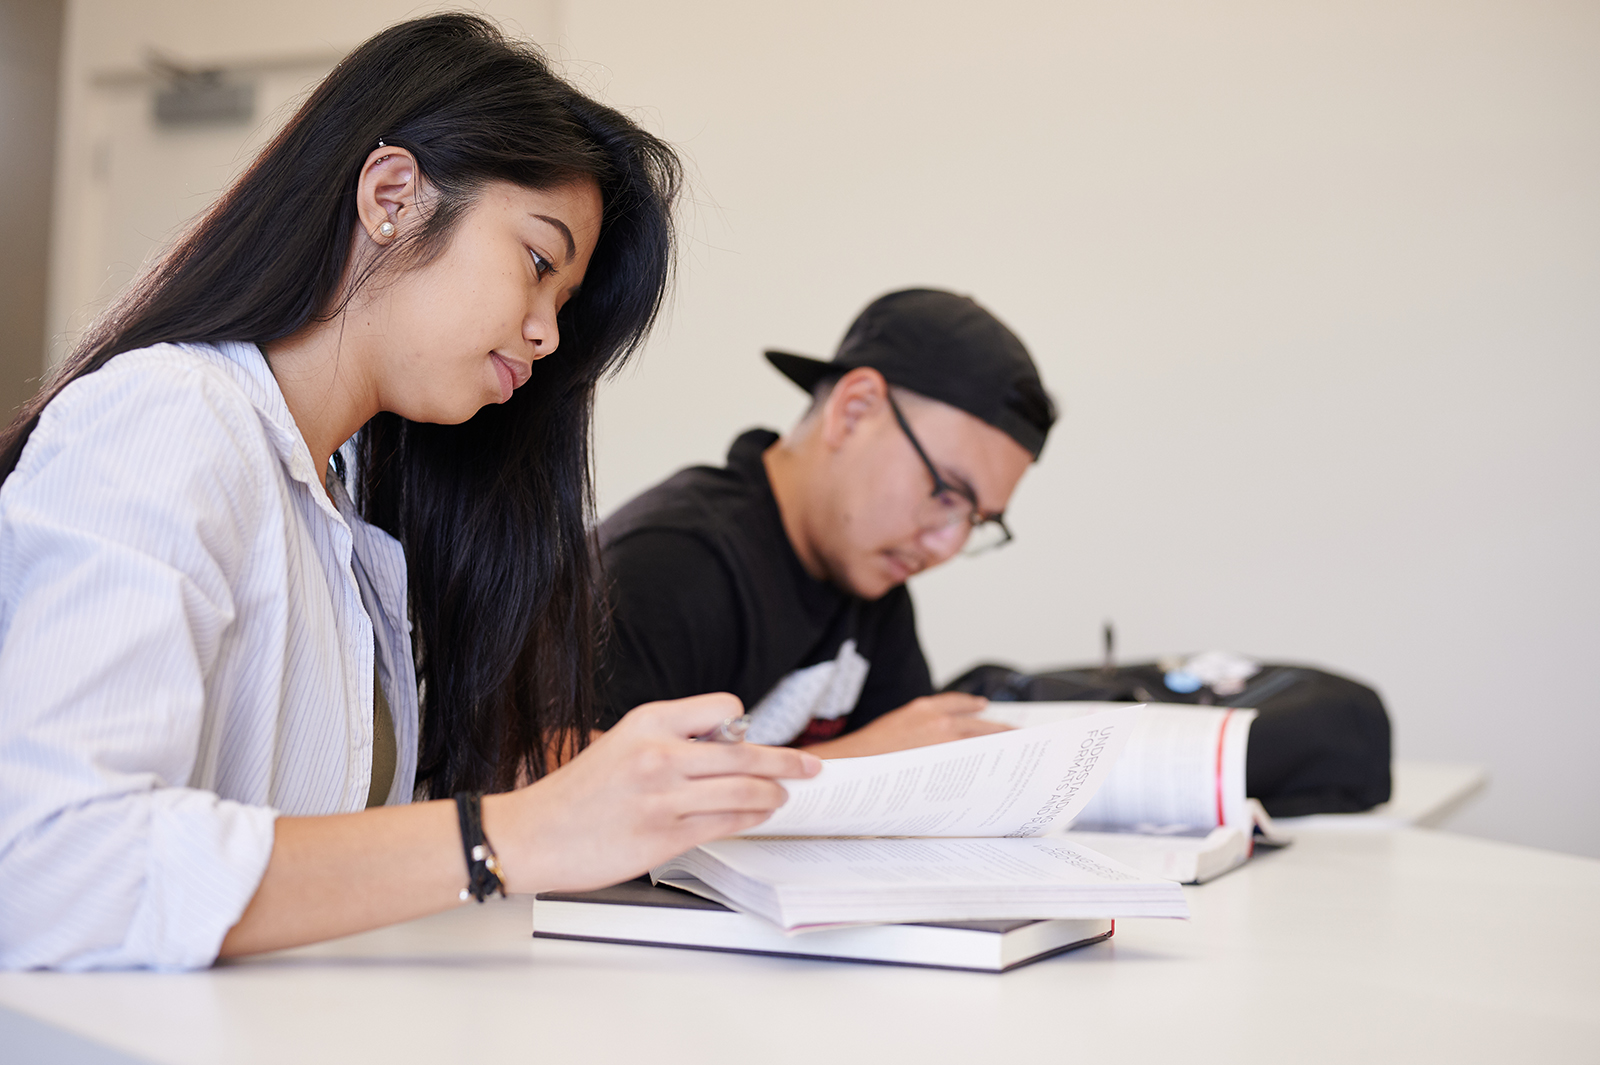 Two students studying in class.